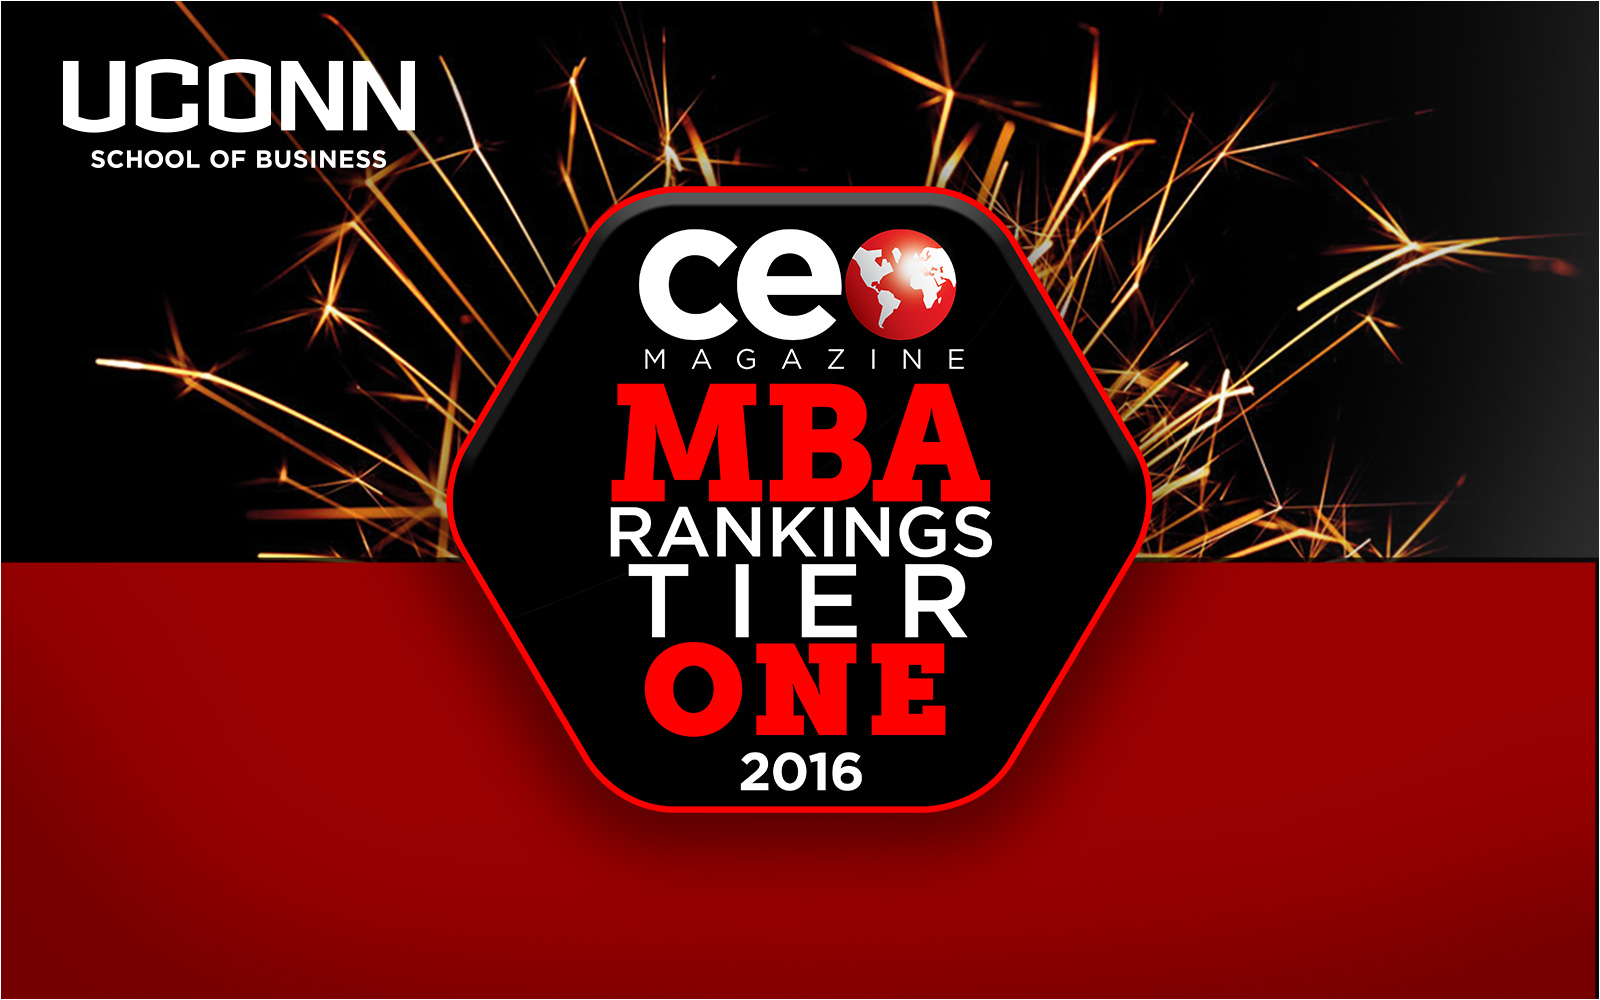 CEO Magazine - MBA Rankings